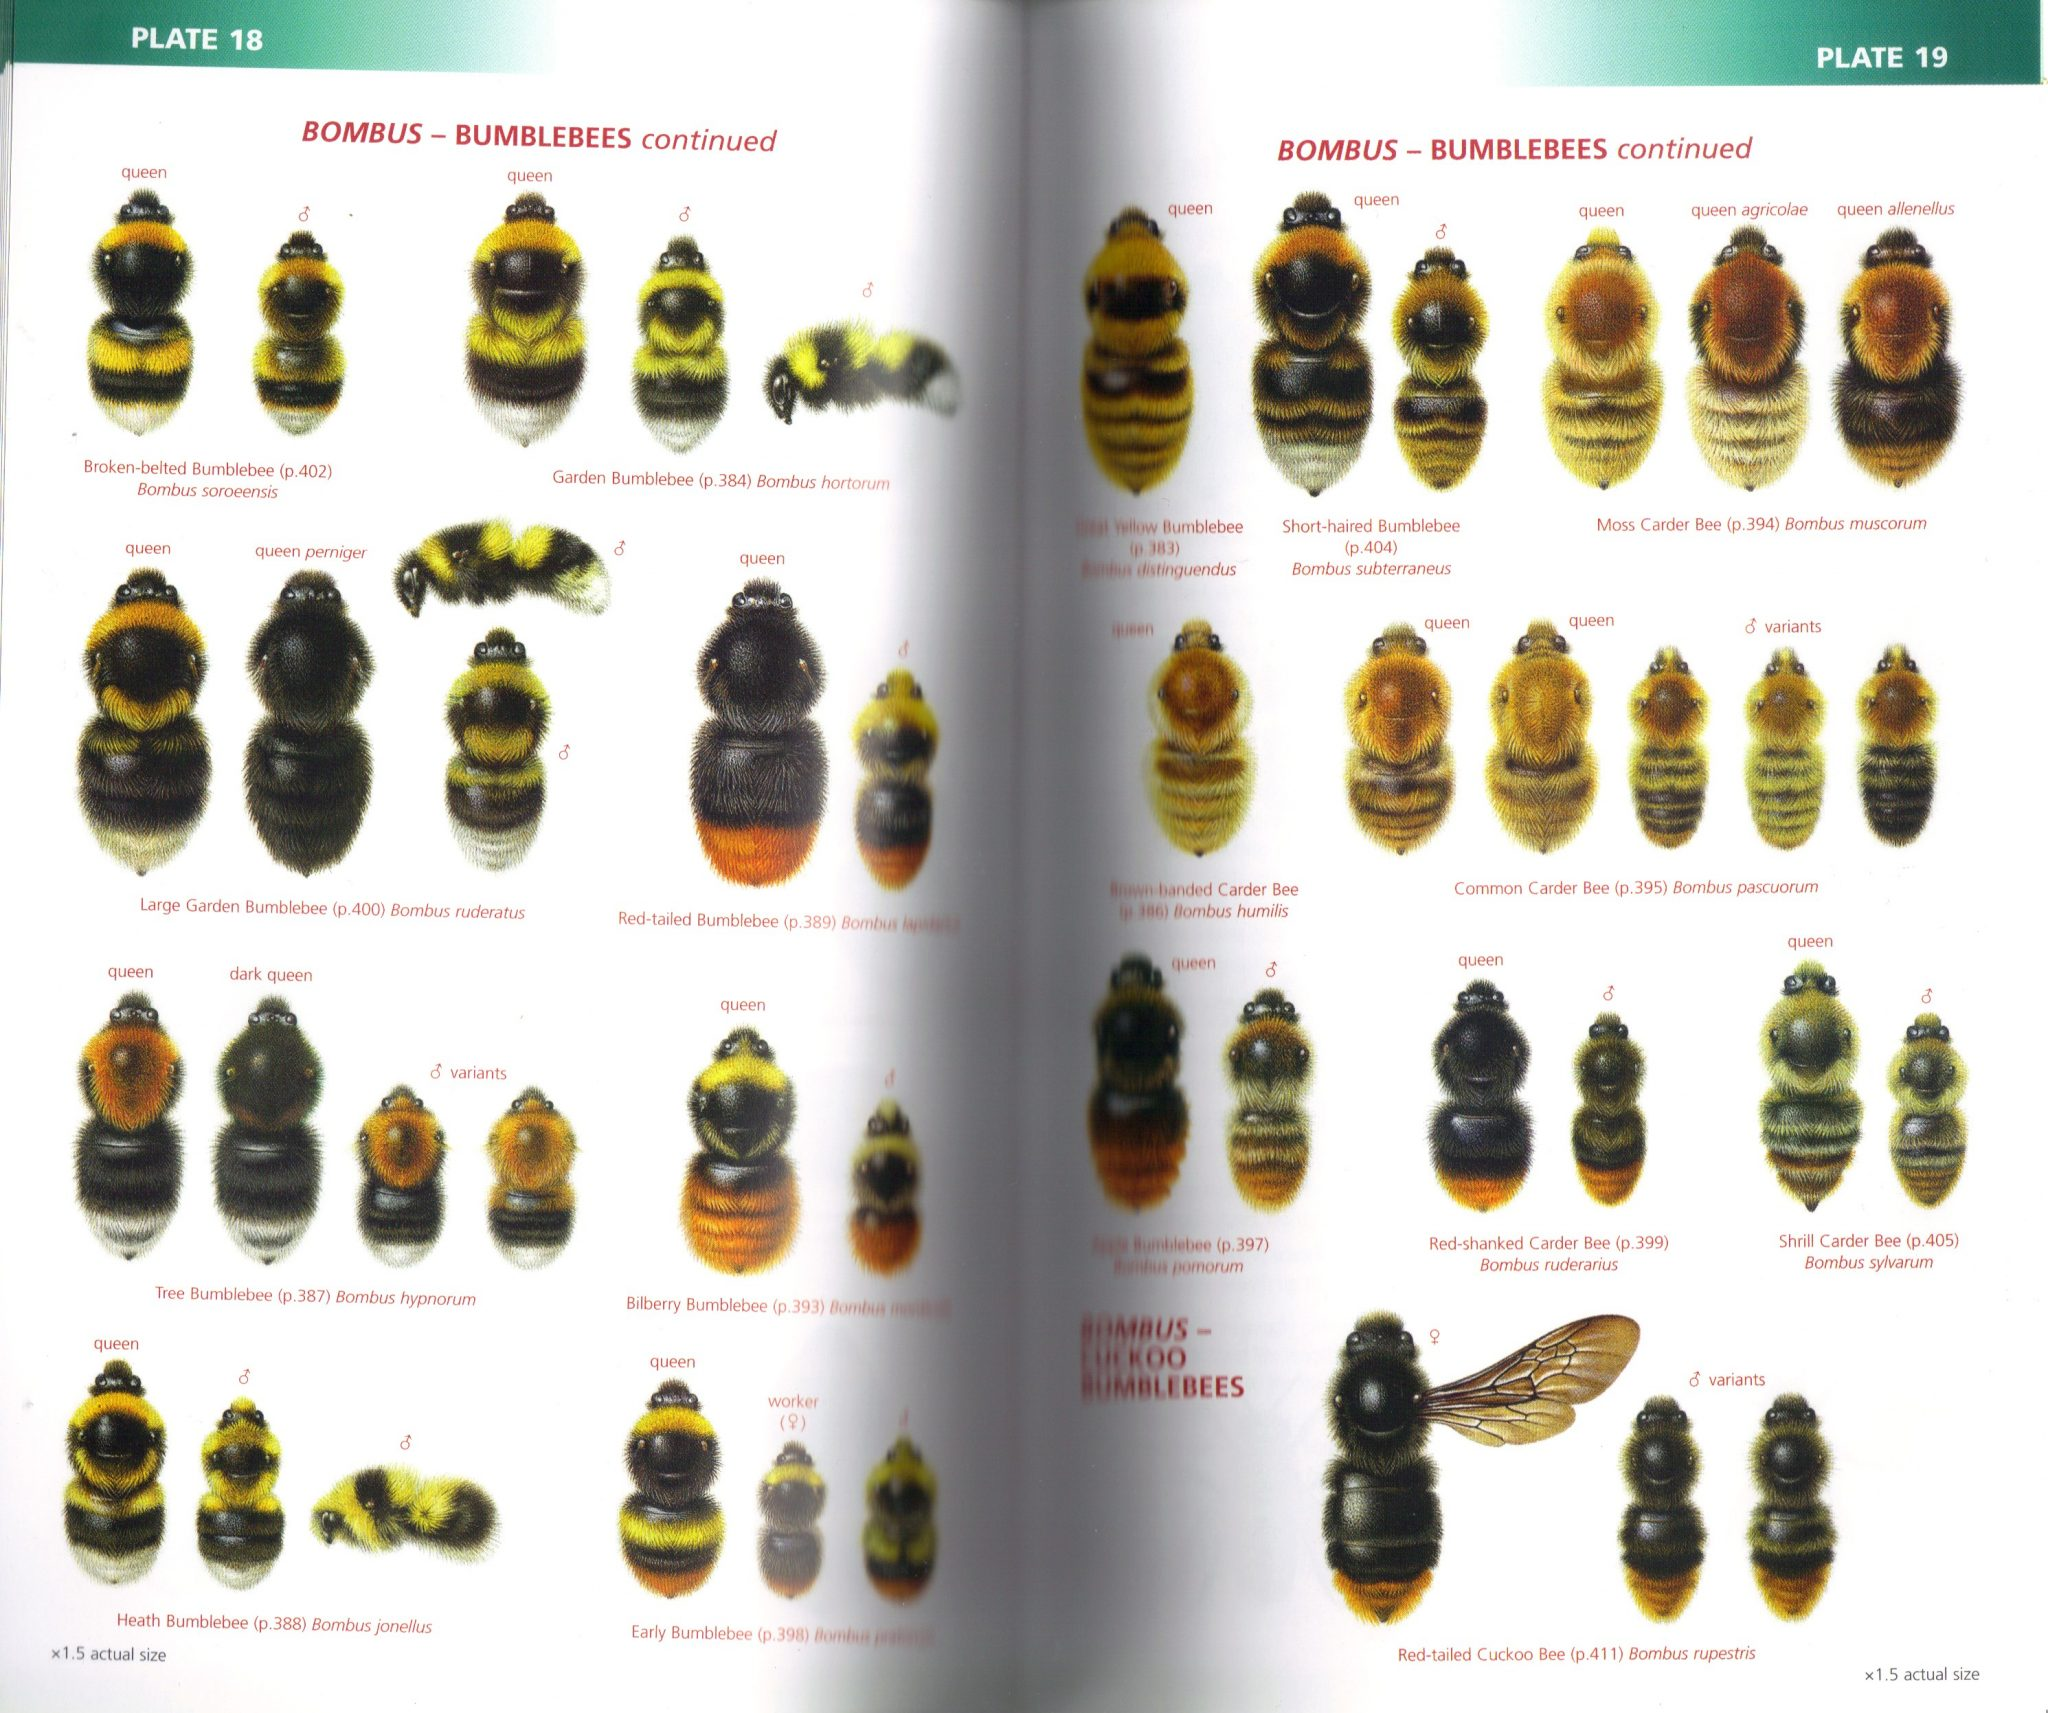 Guide to bees of britain filberts of dorset.